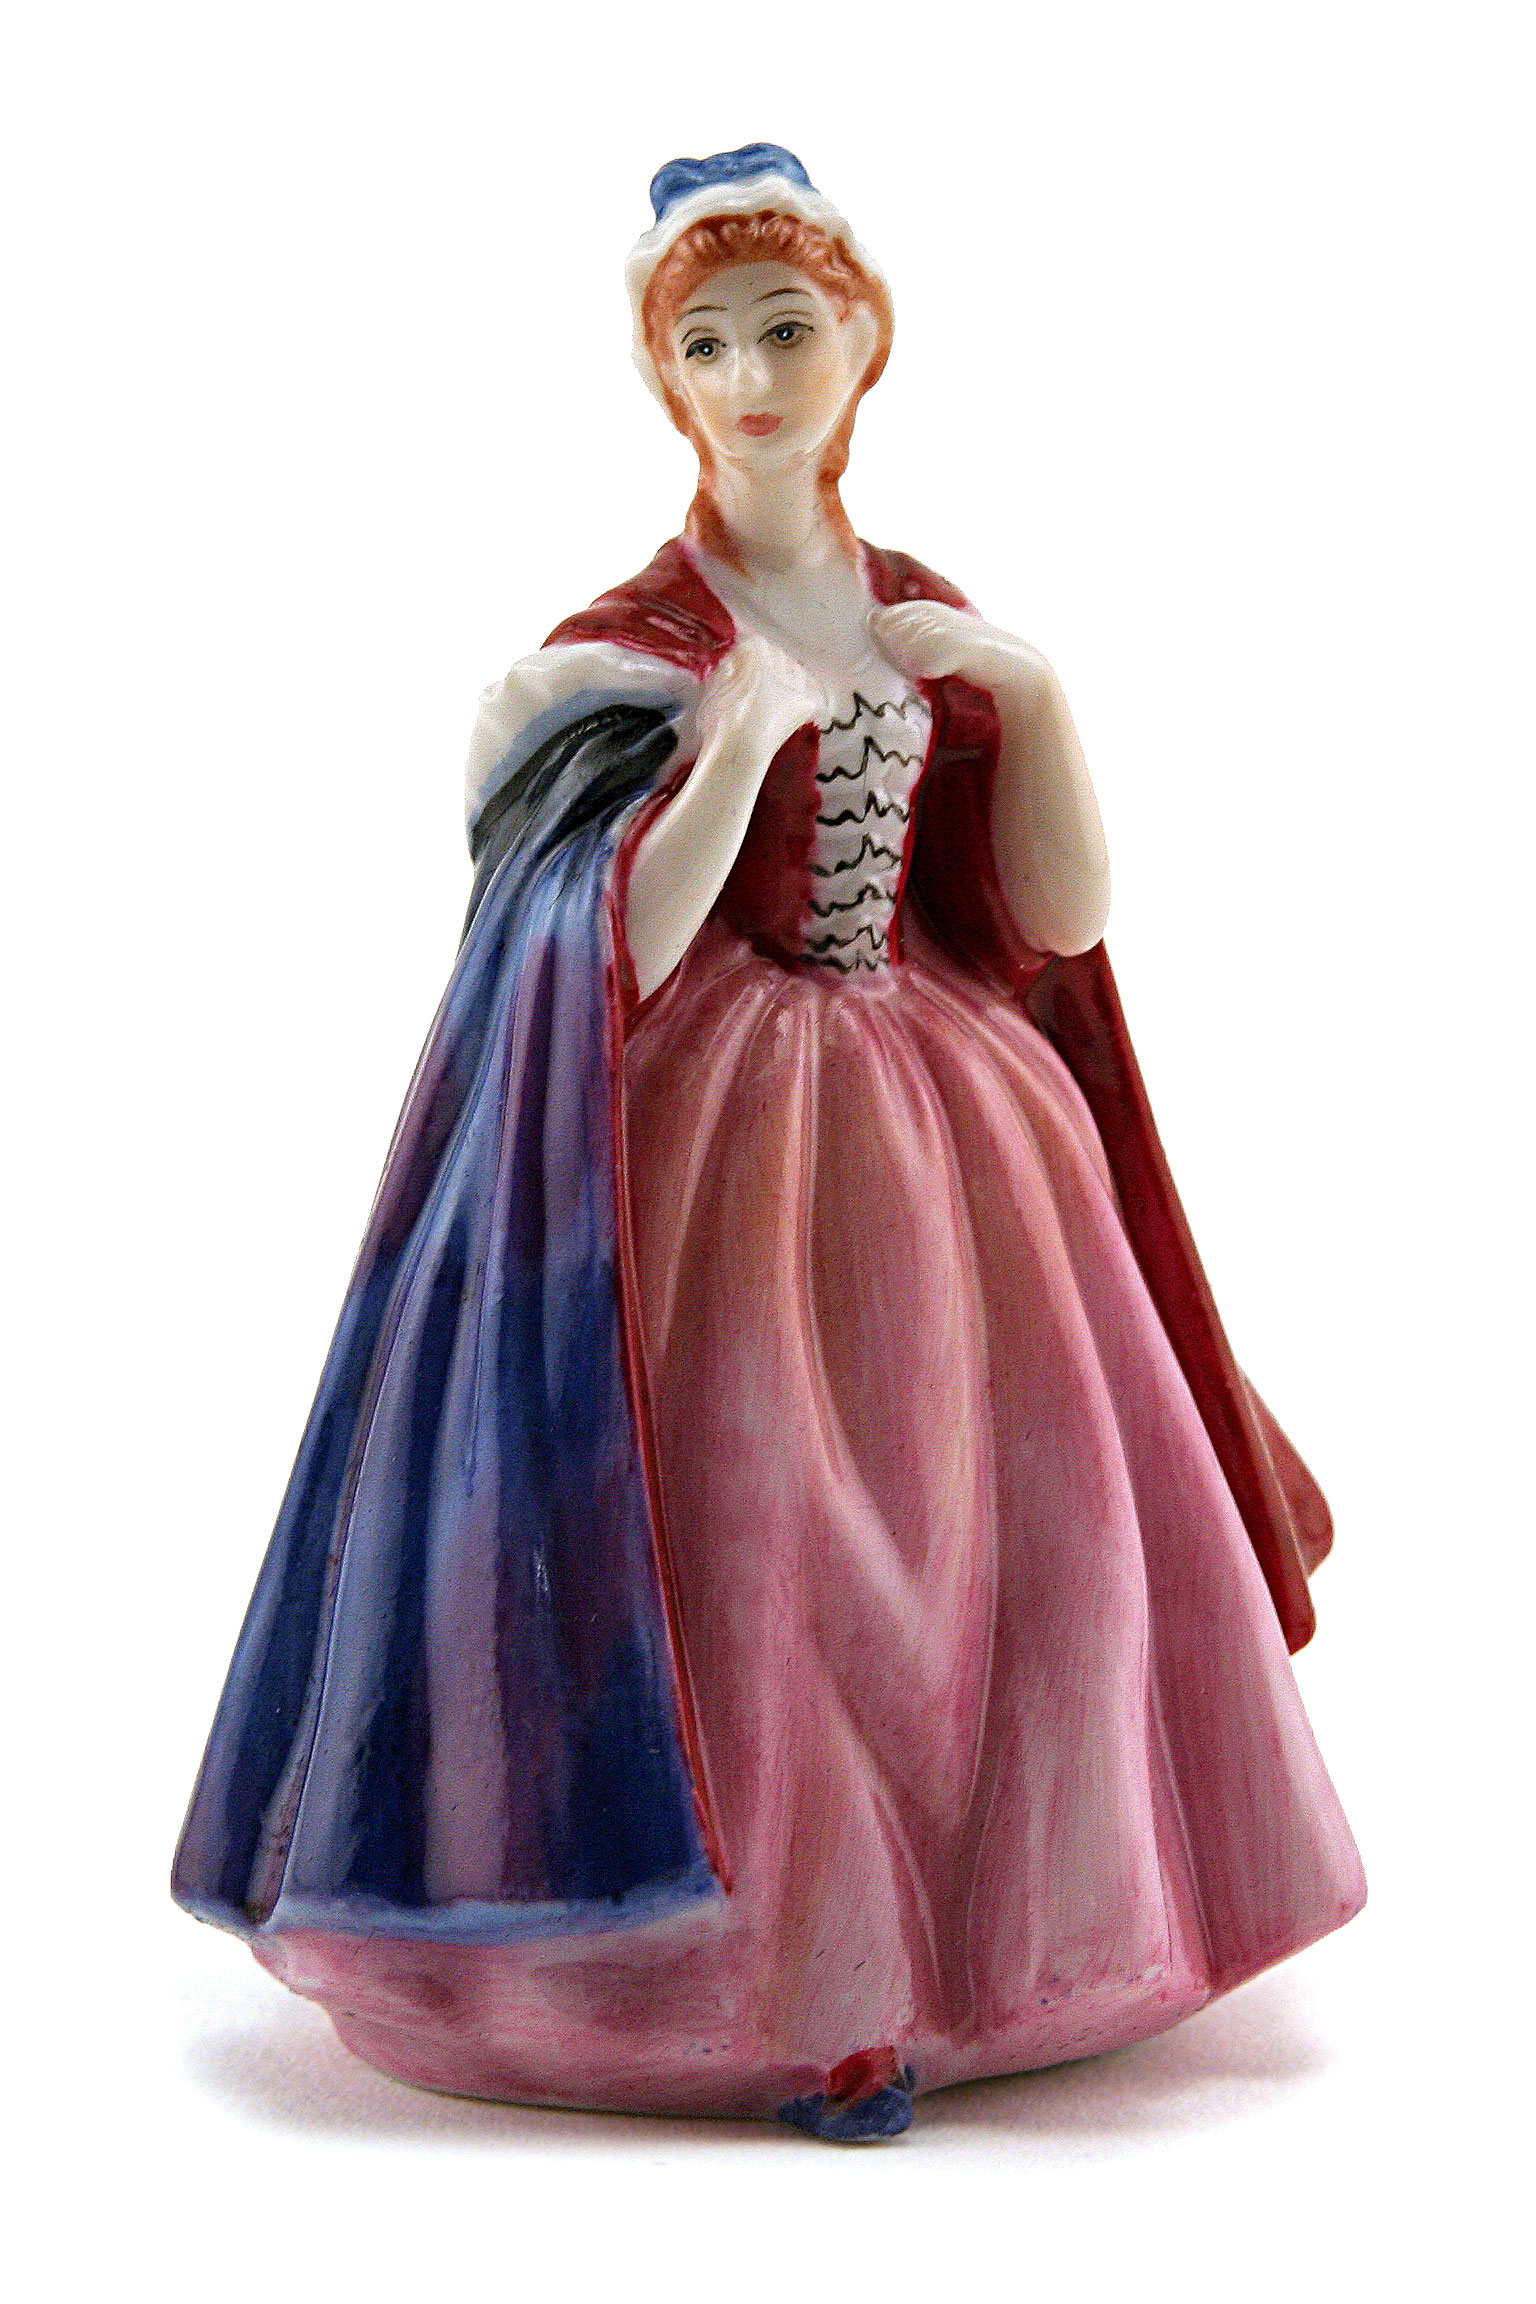 Bess M210 - Royal Doulton Figurine